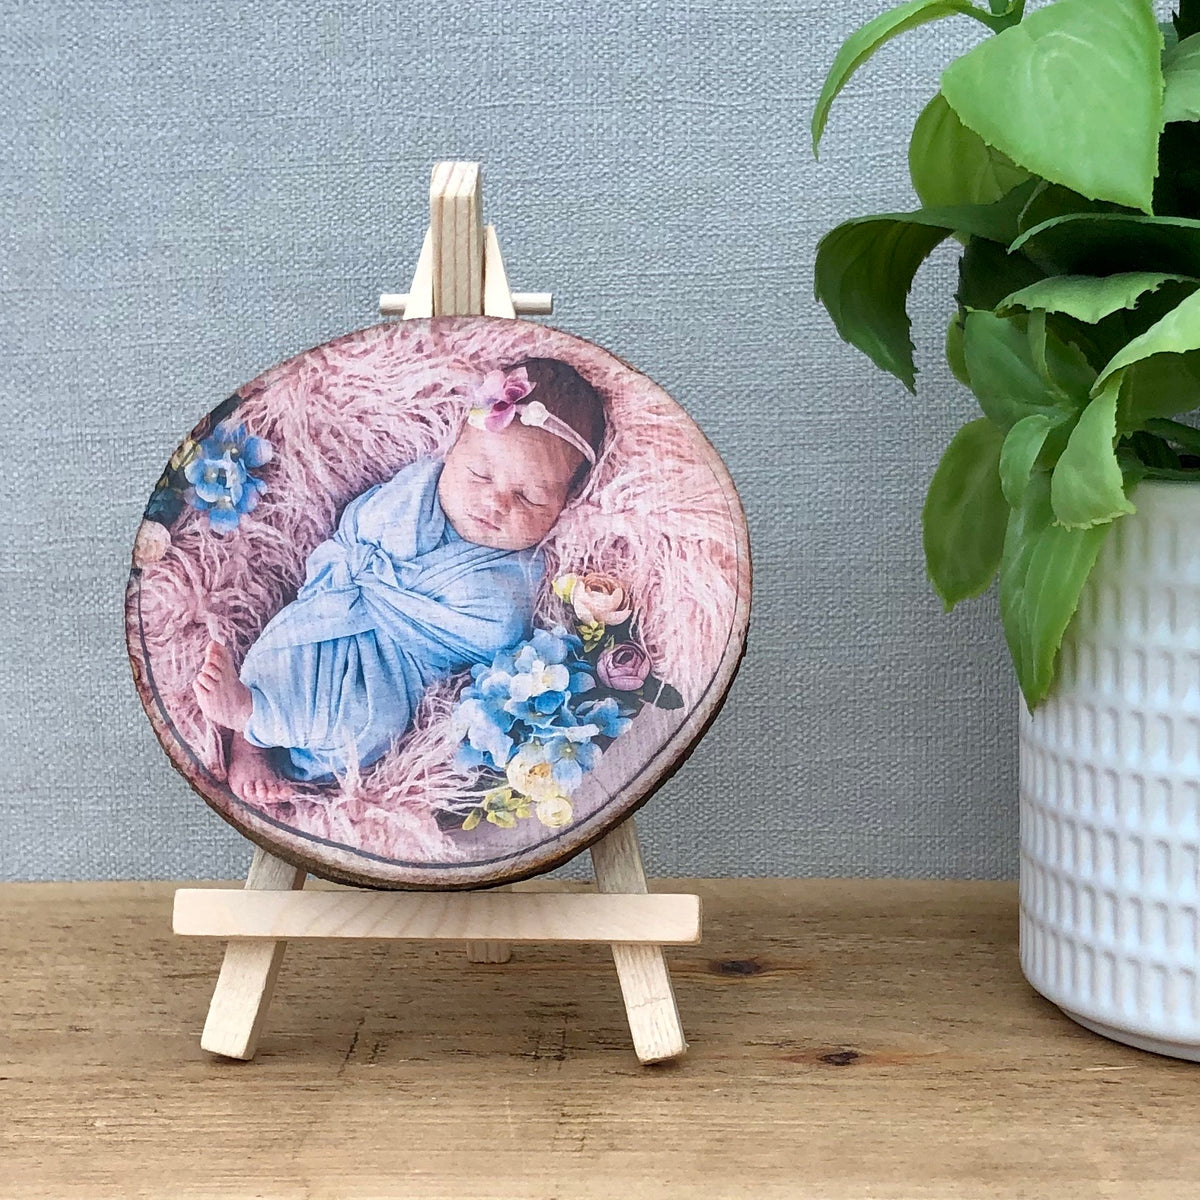 A wood slice photo plaque showing a newborn baby wrapped in a blanket, lying on feathery cushions.